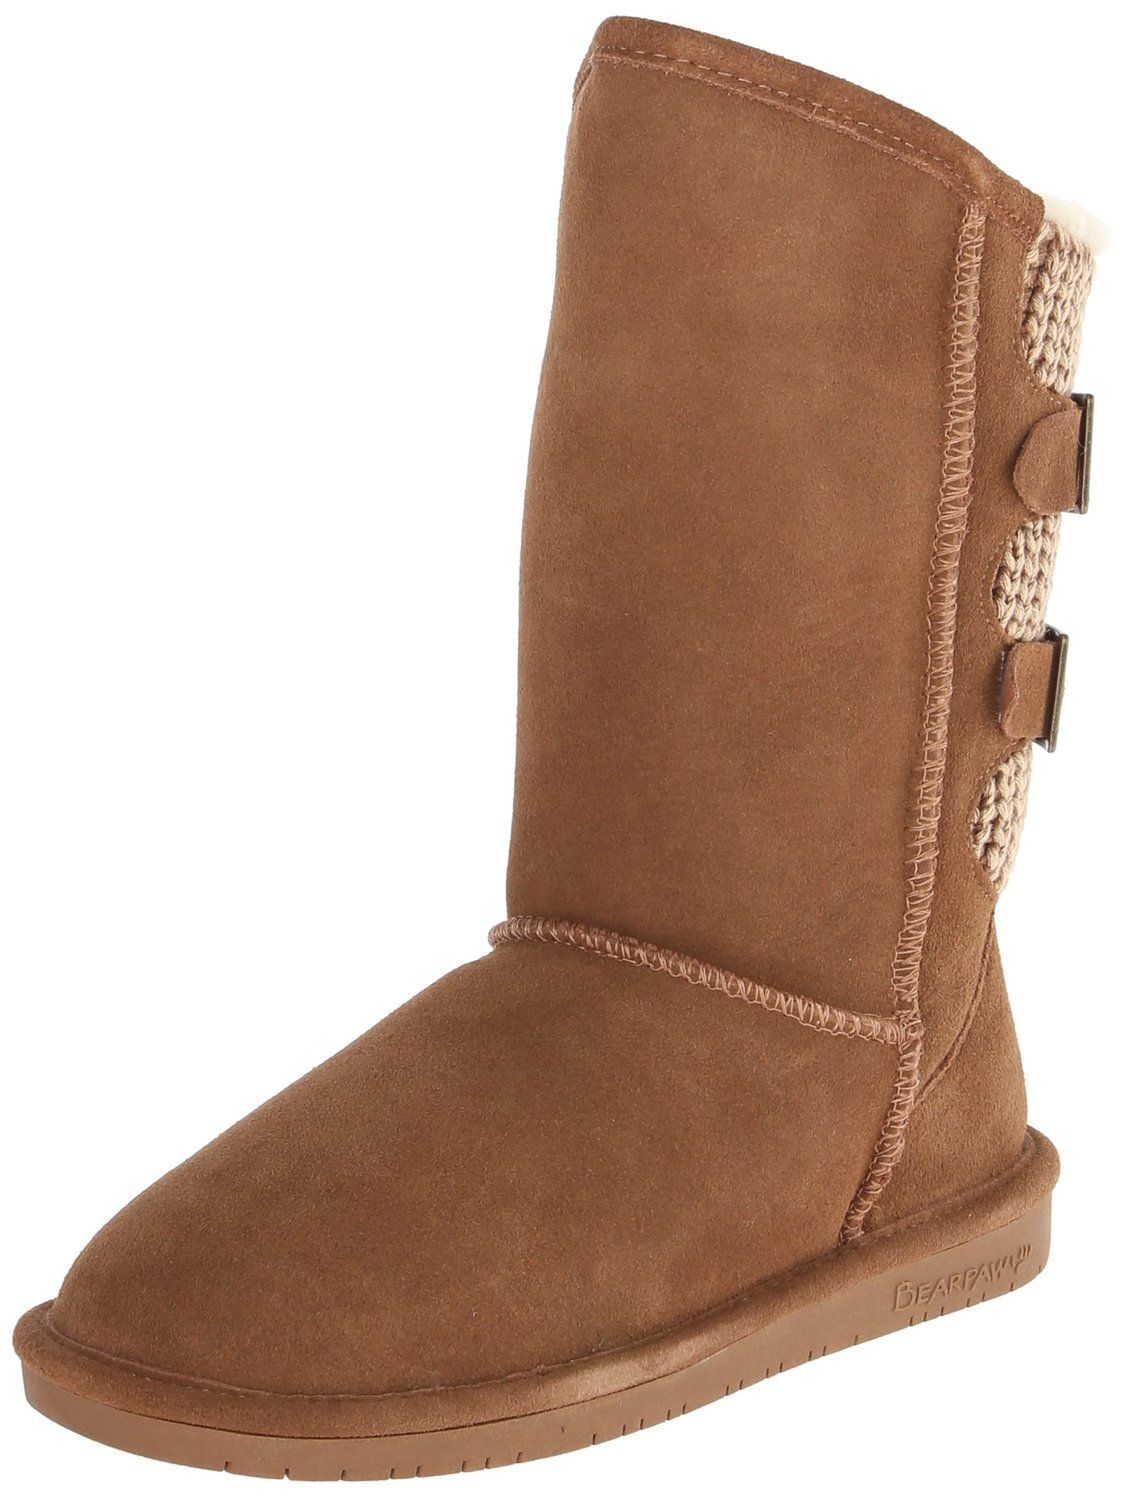 BEARPAW Damens's Boshie Winter Boot  Click Click  image to review more ... 6b3527